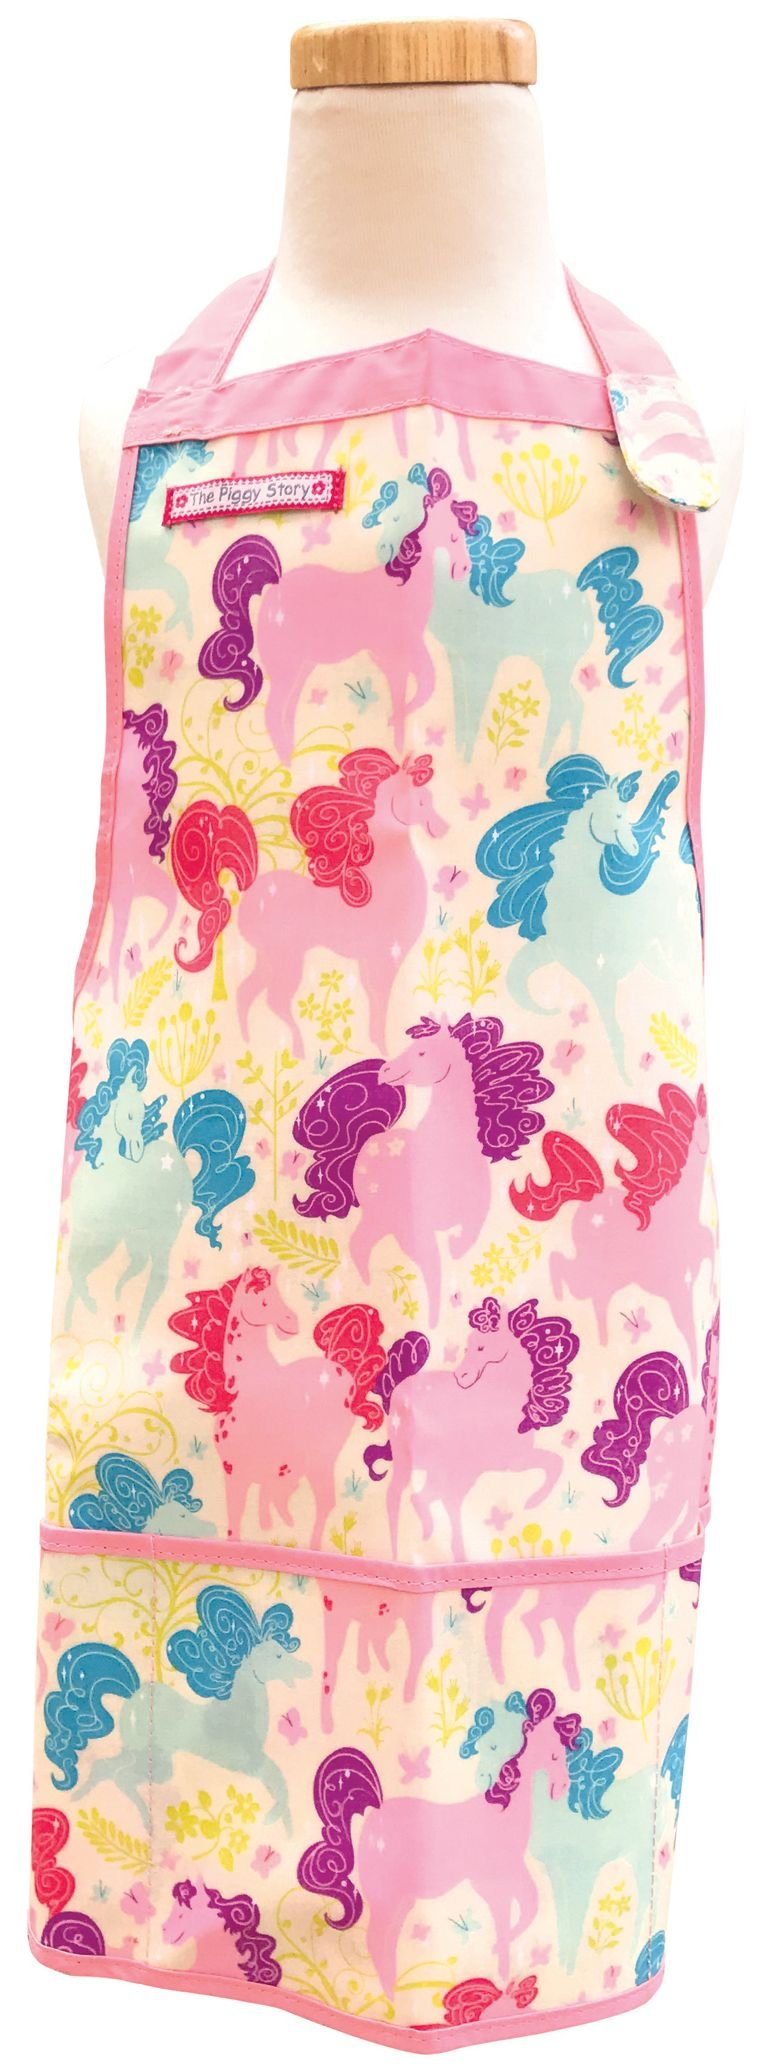 The Piggy Story 'Dancing Ponies' Child's Fun Time Apron for Arts, Crafts and Cooking